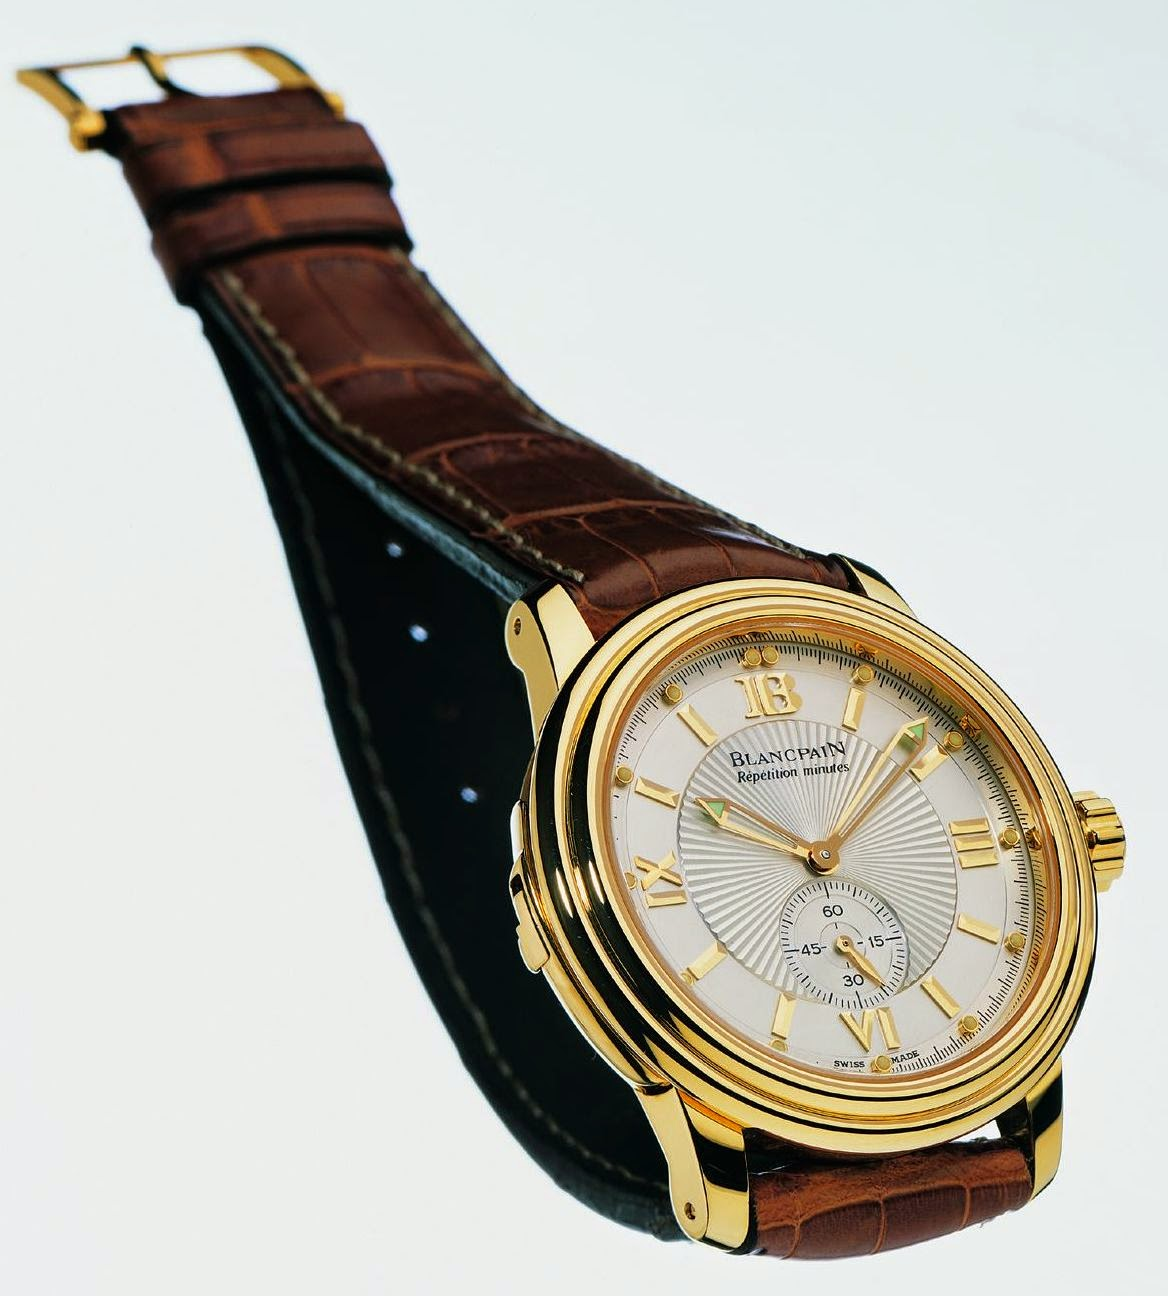 BLANCPAIN Répétition Minutes Étanche 2135 Yellow Gold – The First Minute  Repeater Wristwatch with Water Resistant to 30 Meters